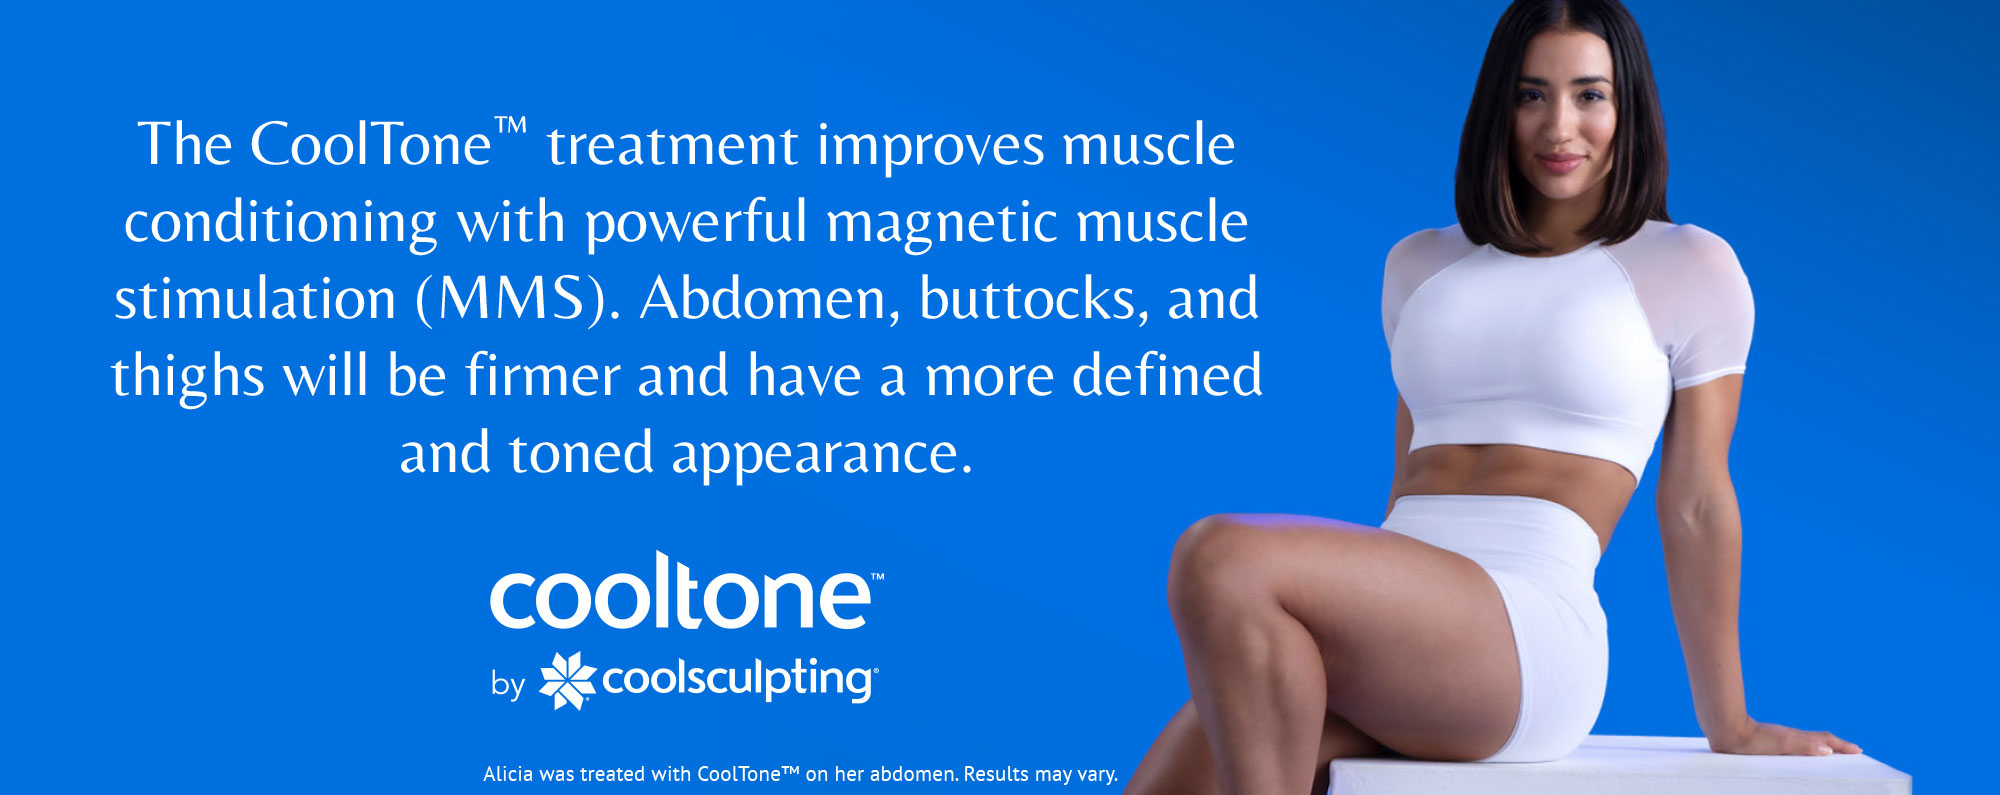 The CoolTone™ treatment improves muscle conditioning with powerful magnetic muscle stimulation (MMS)